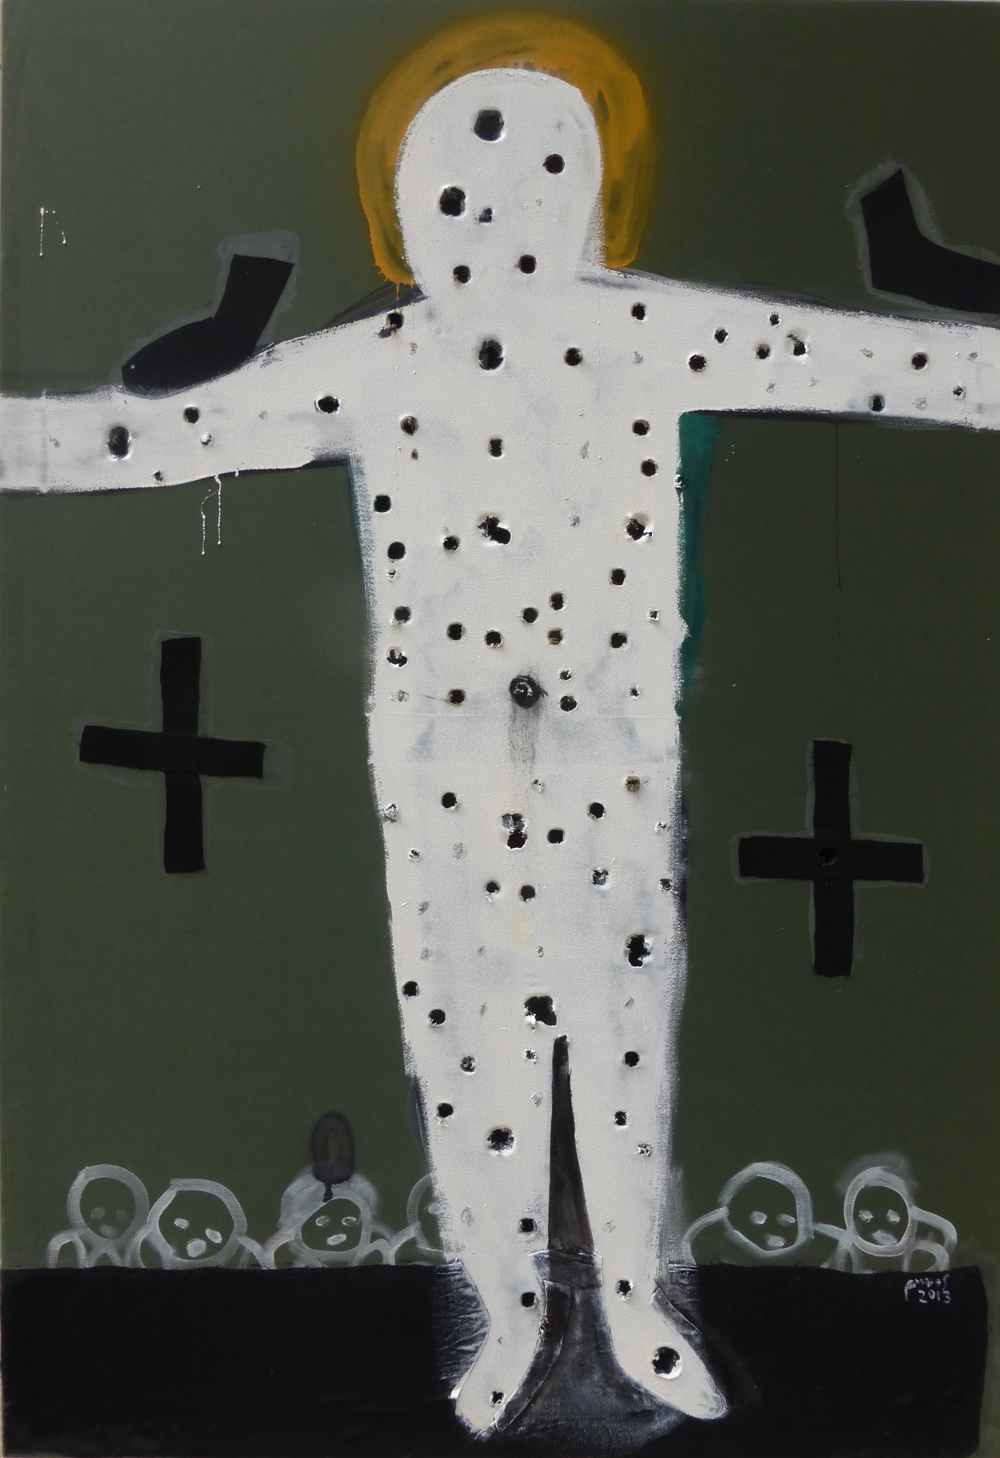 A cruciform figure with holes